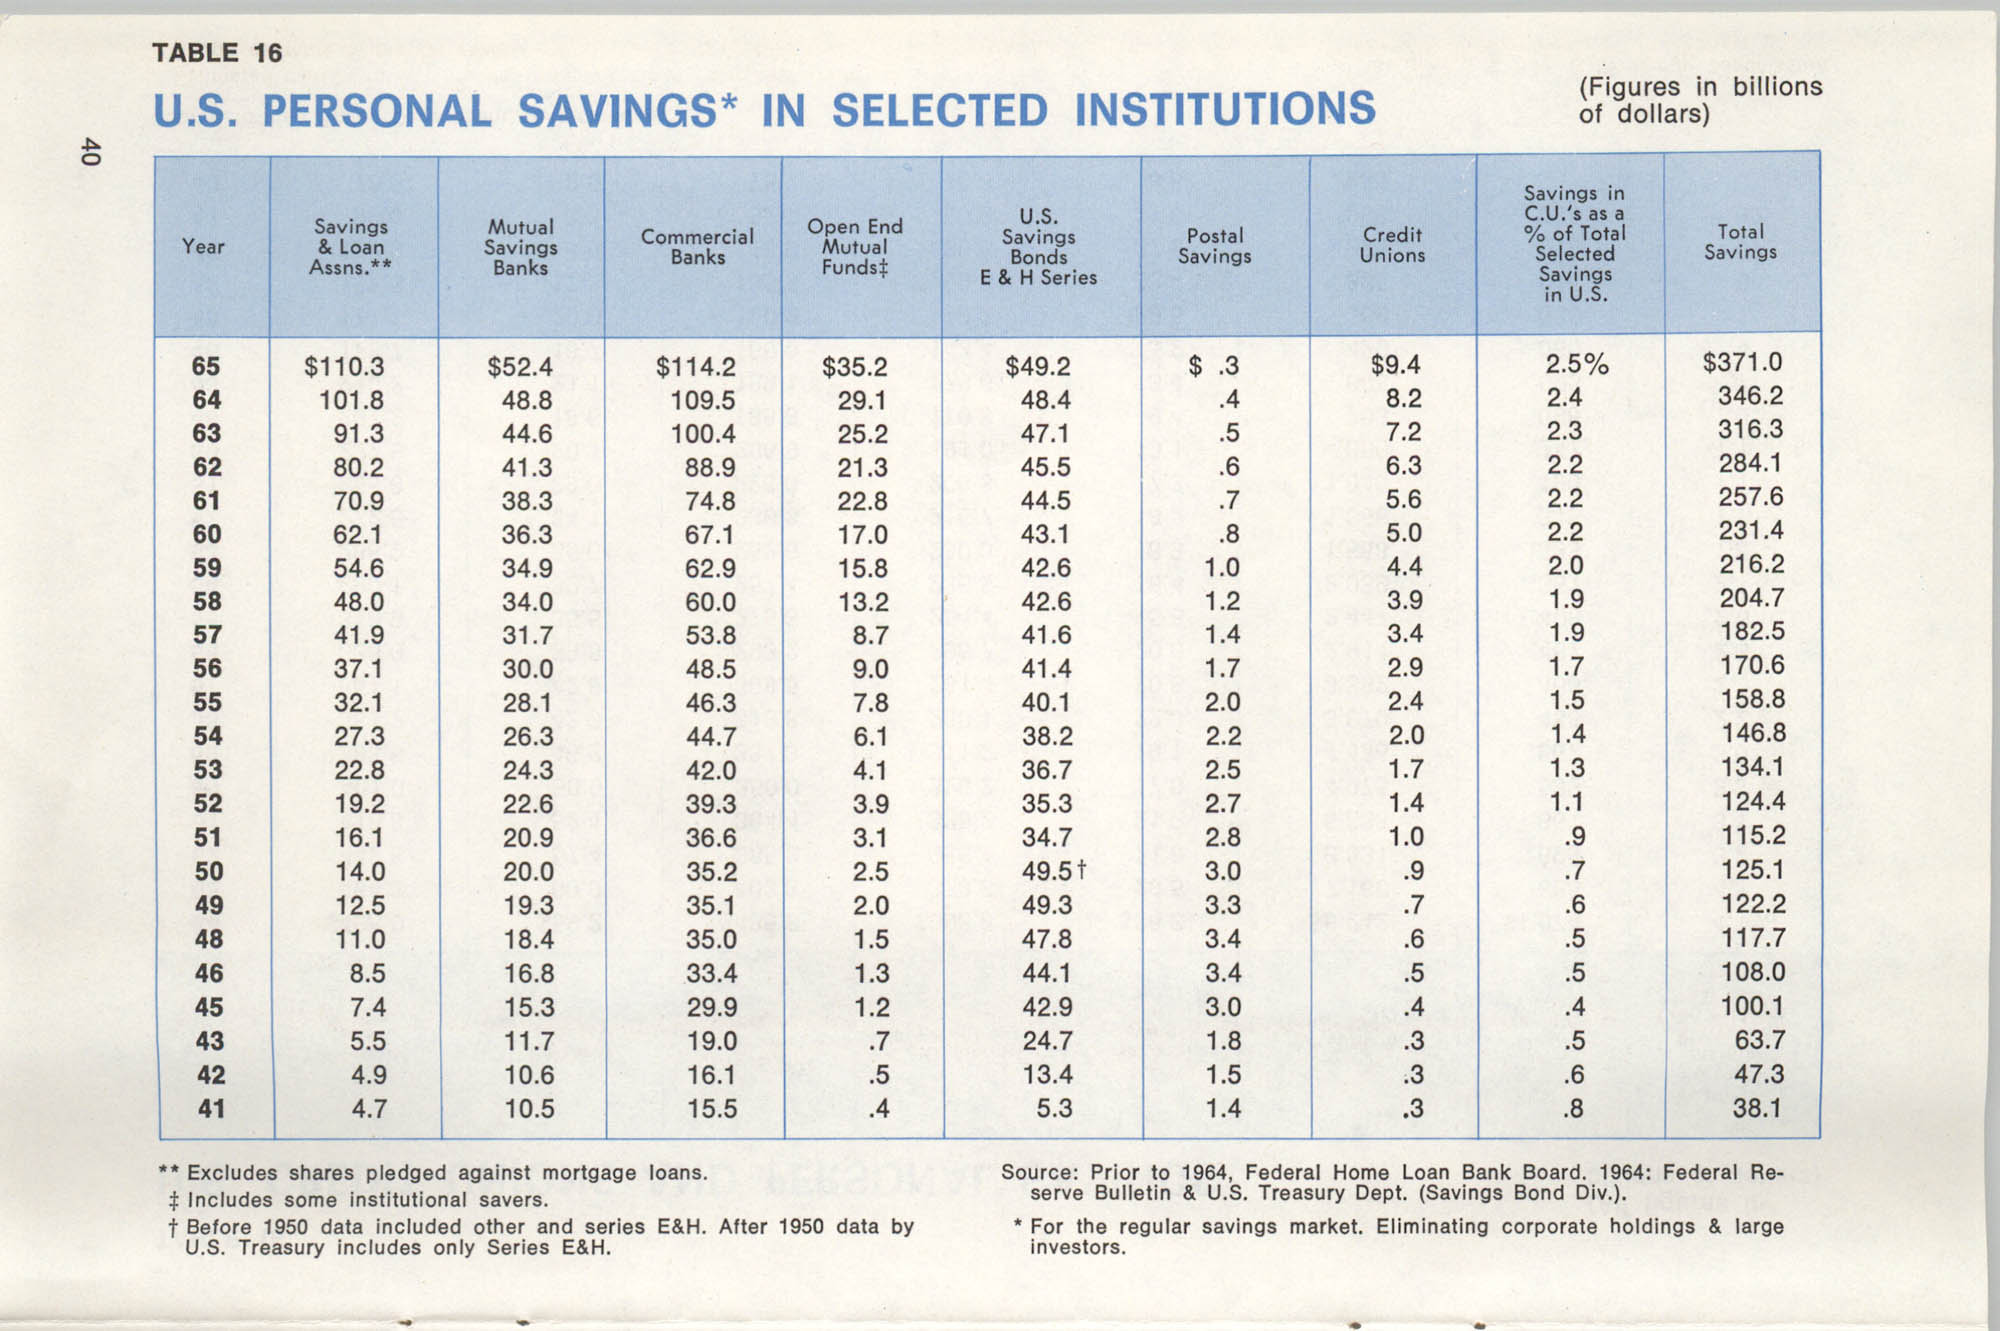 International Credit Union Yearbook, Page 40